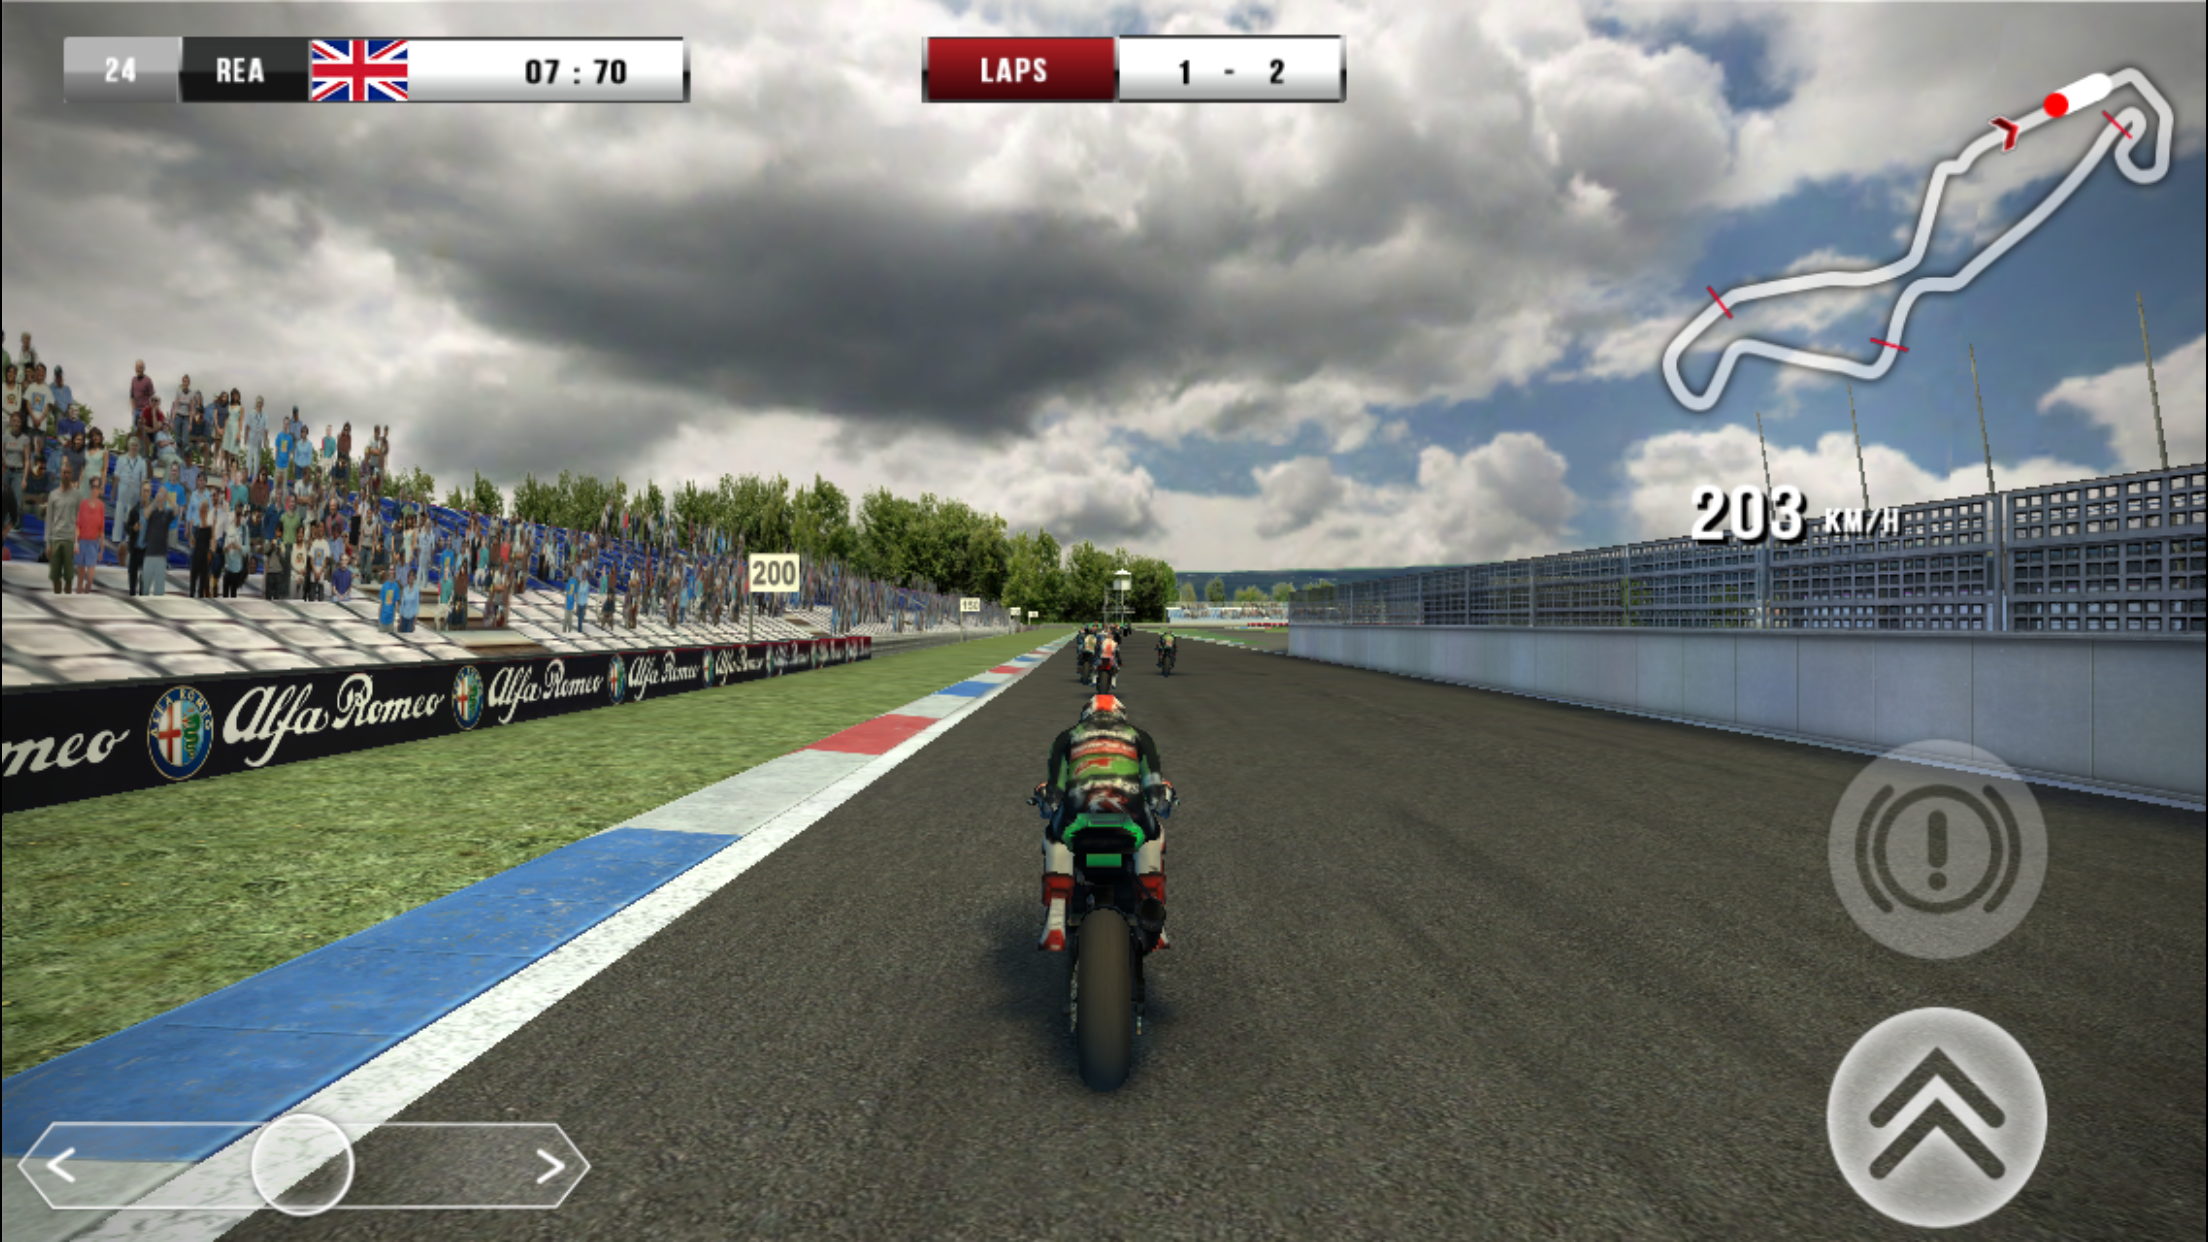 SBK16 is a satisfying bike racer - provided you can overcome one thing